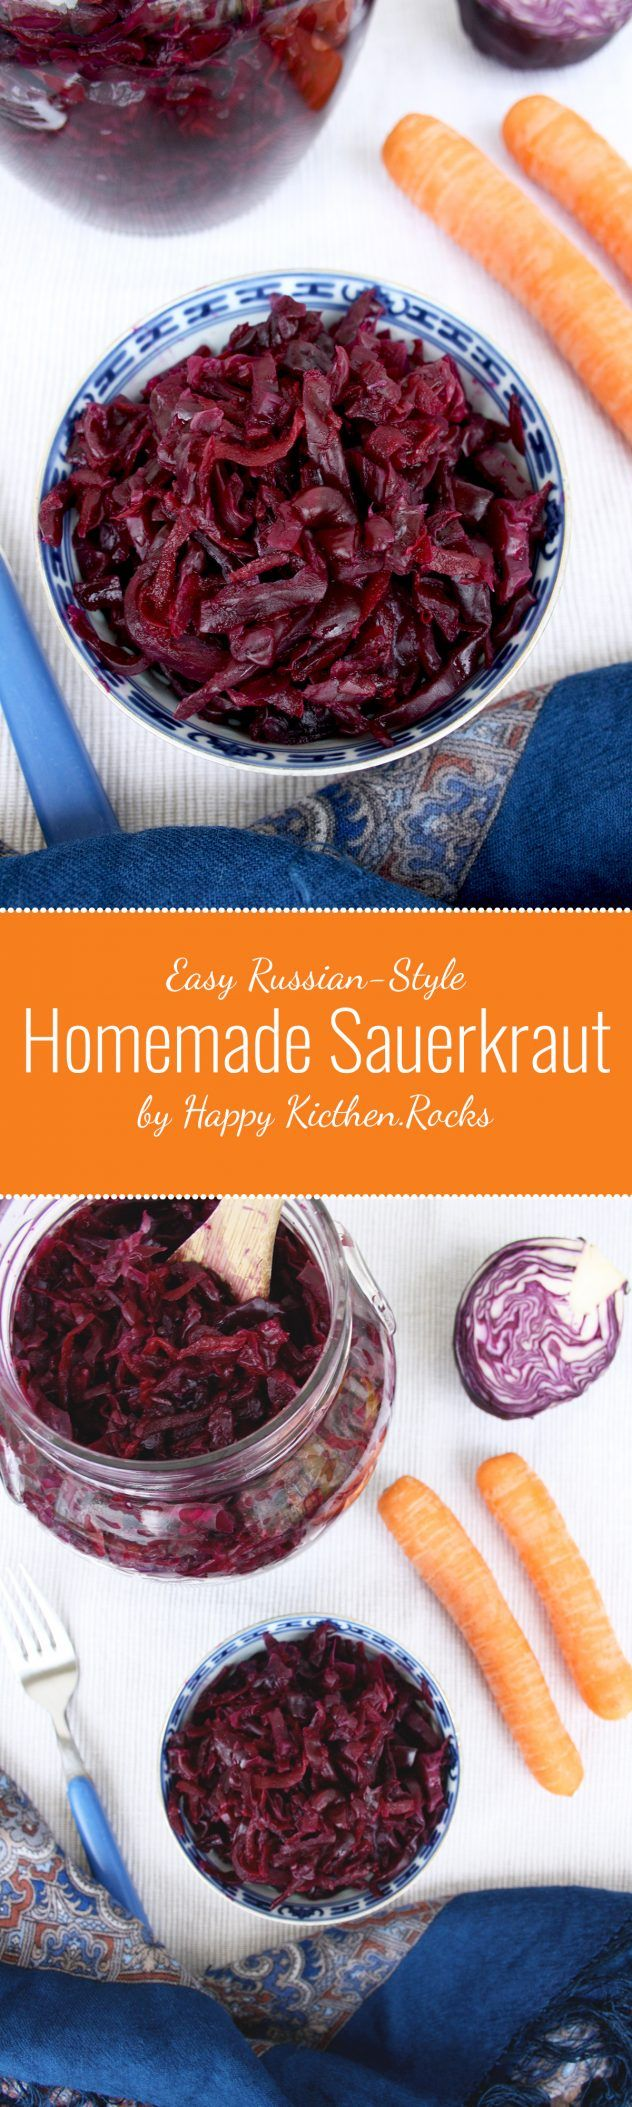 Easy Russian-Style Homemade Sauerkraut: Delicious and healthy way to use leftover cabbage. You only need 4 ingredients and 20 minutes to make it! Take advantage from the numerous health benefits of fermented food.